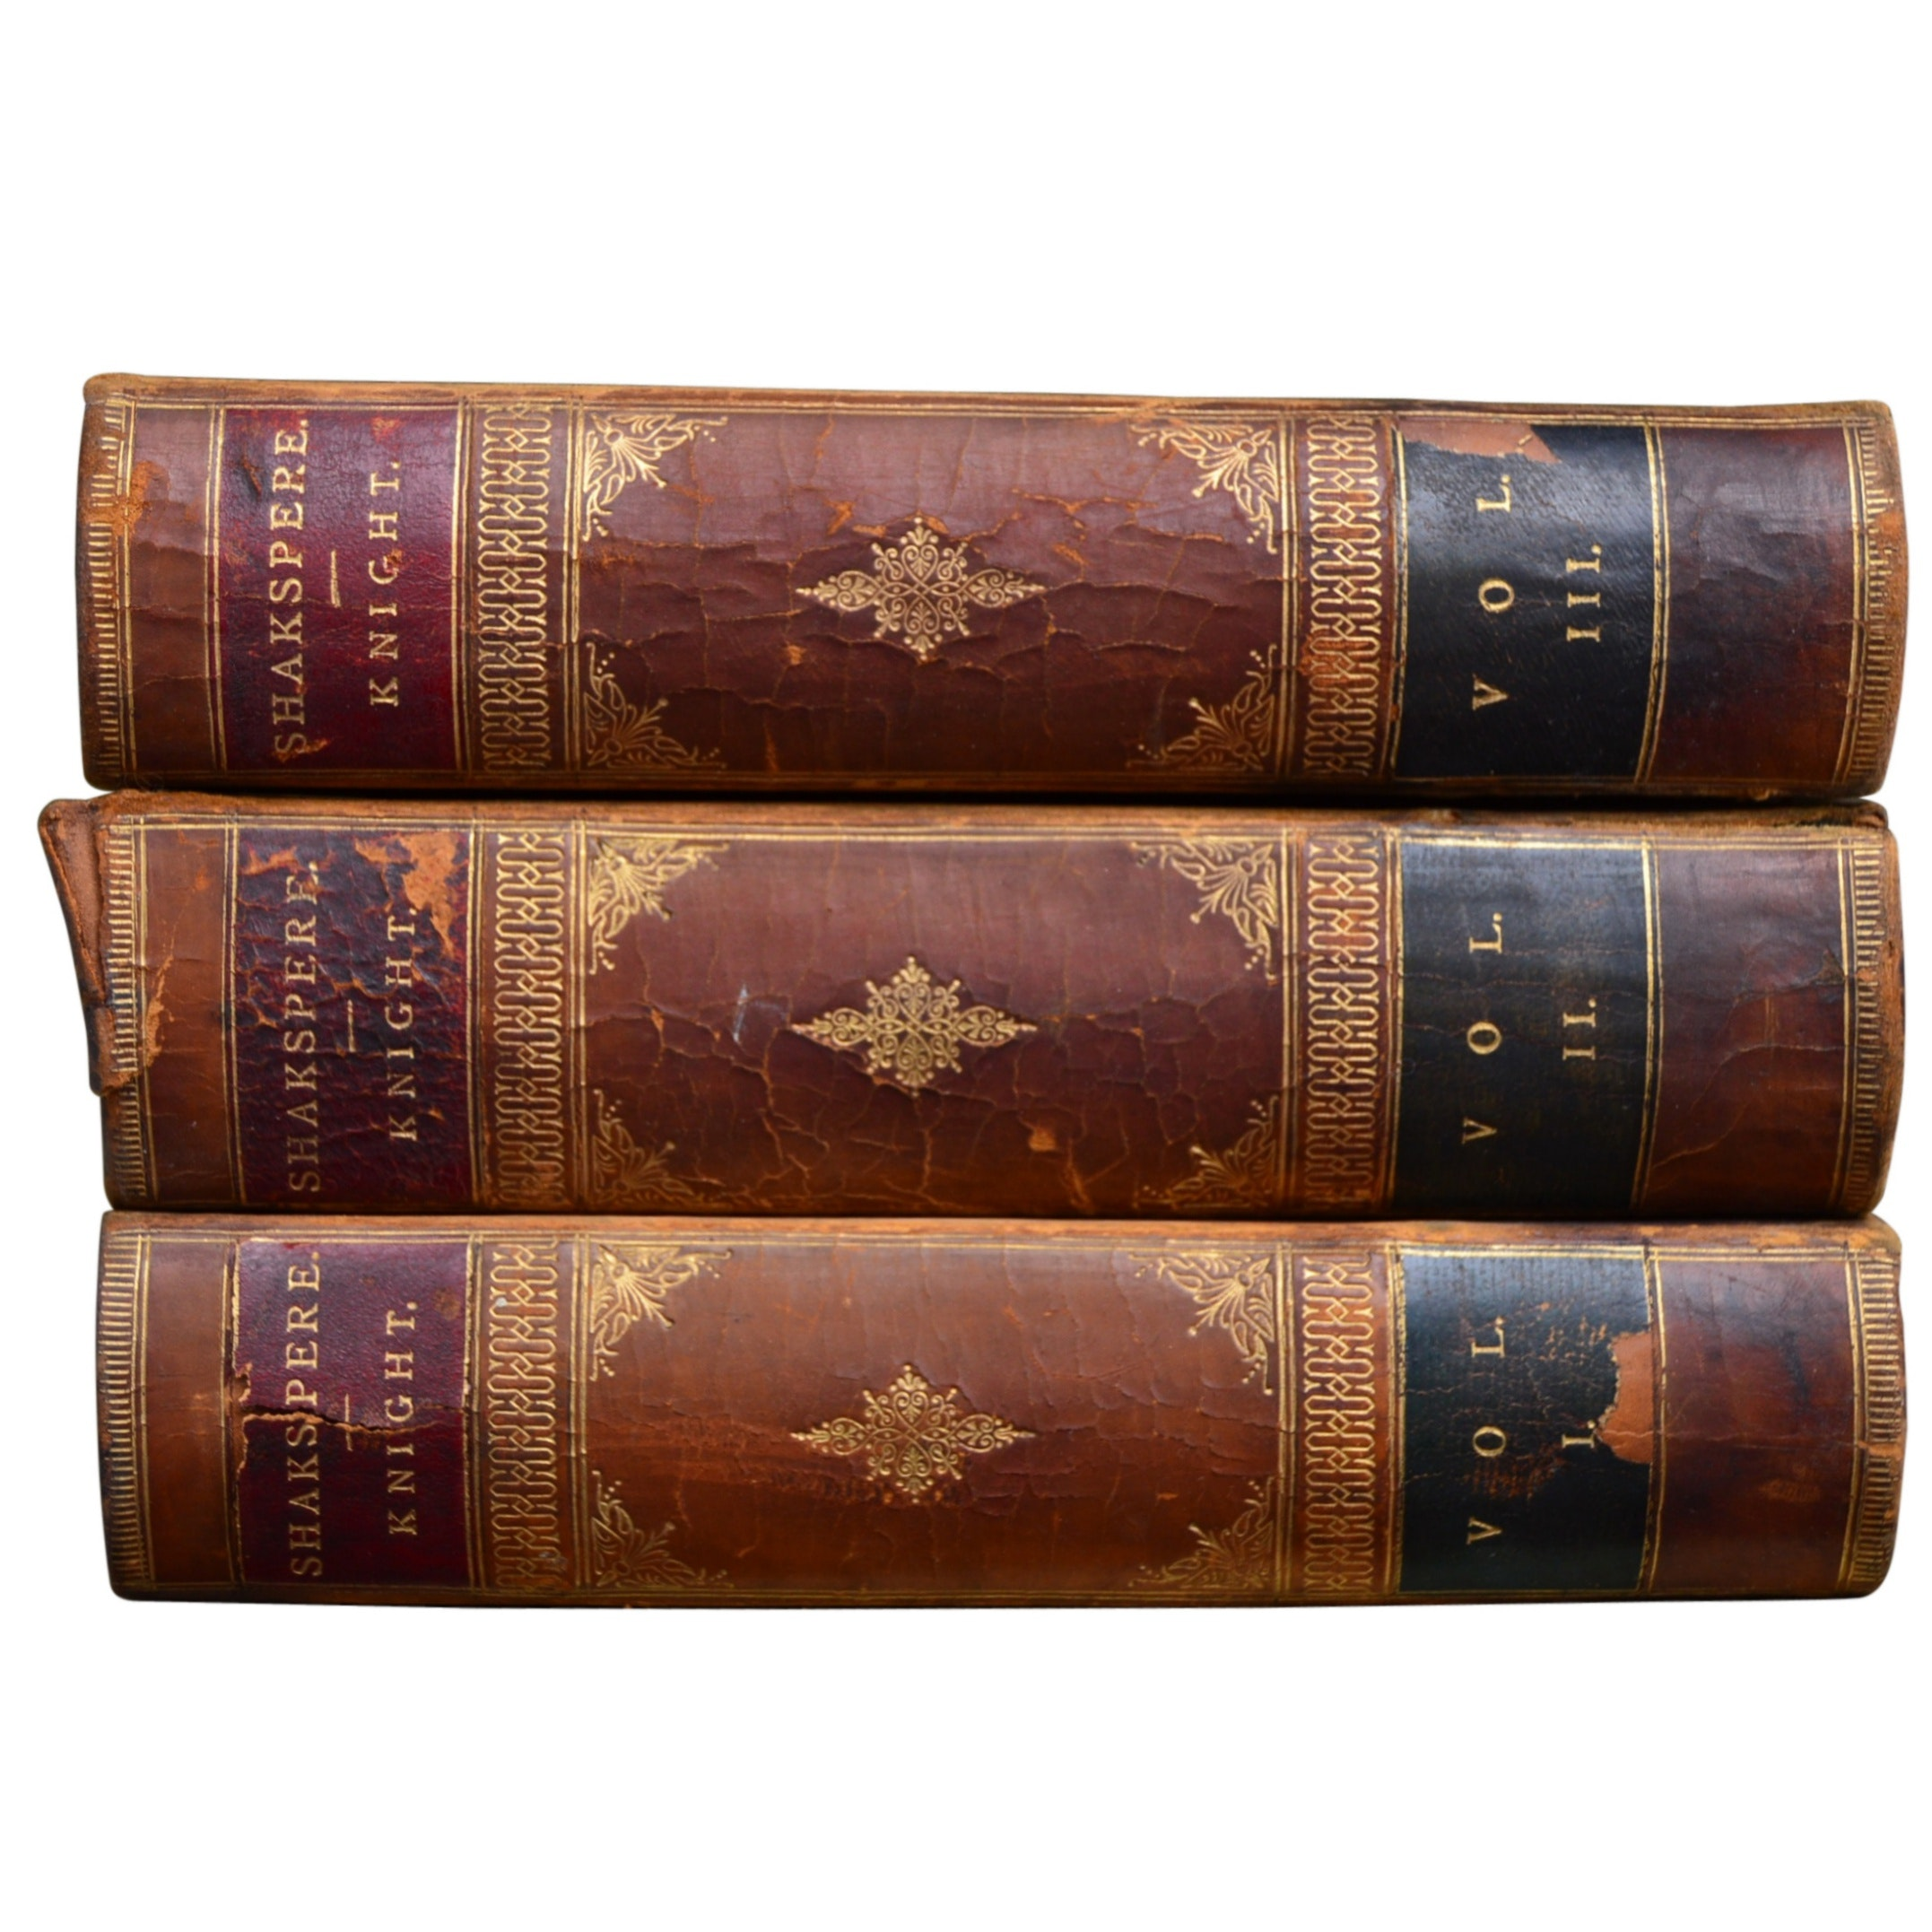 "1884 ""The Works of Shakspere"" 3-Volume Set Edited by Charles Knight"